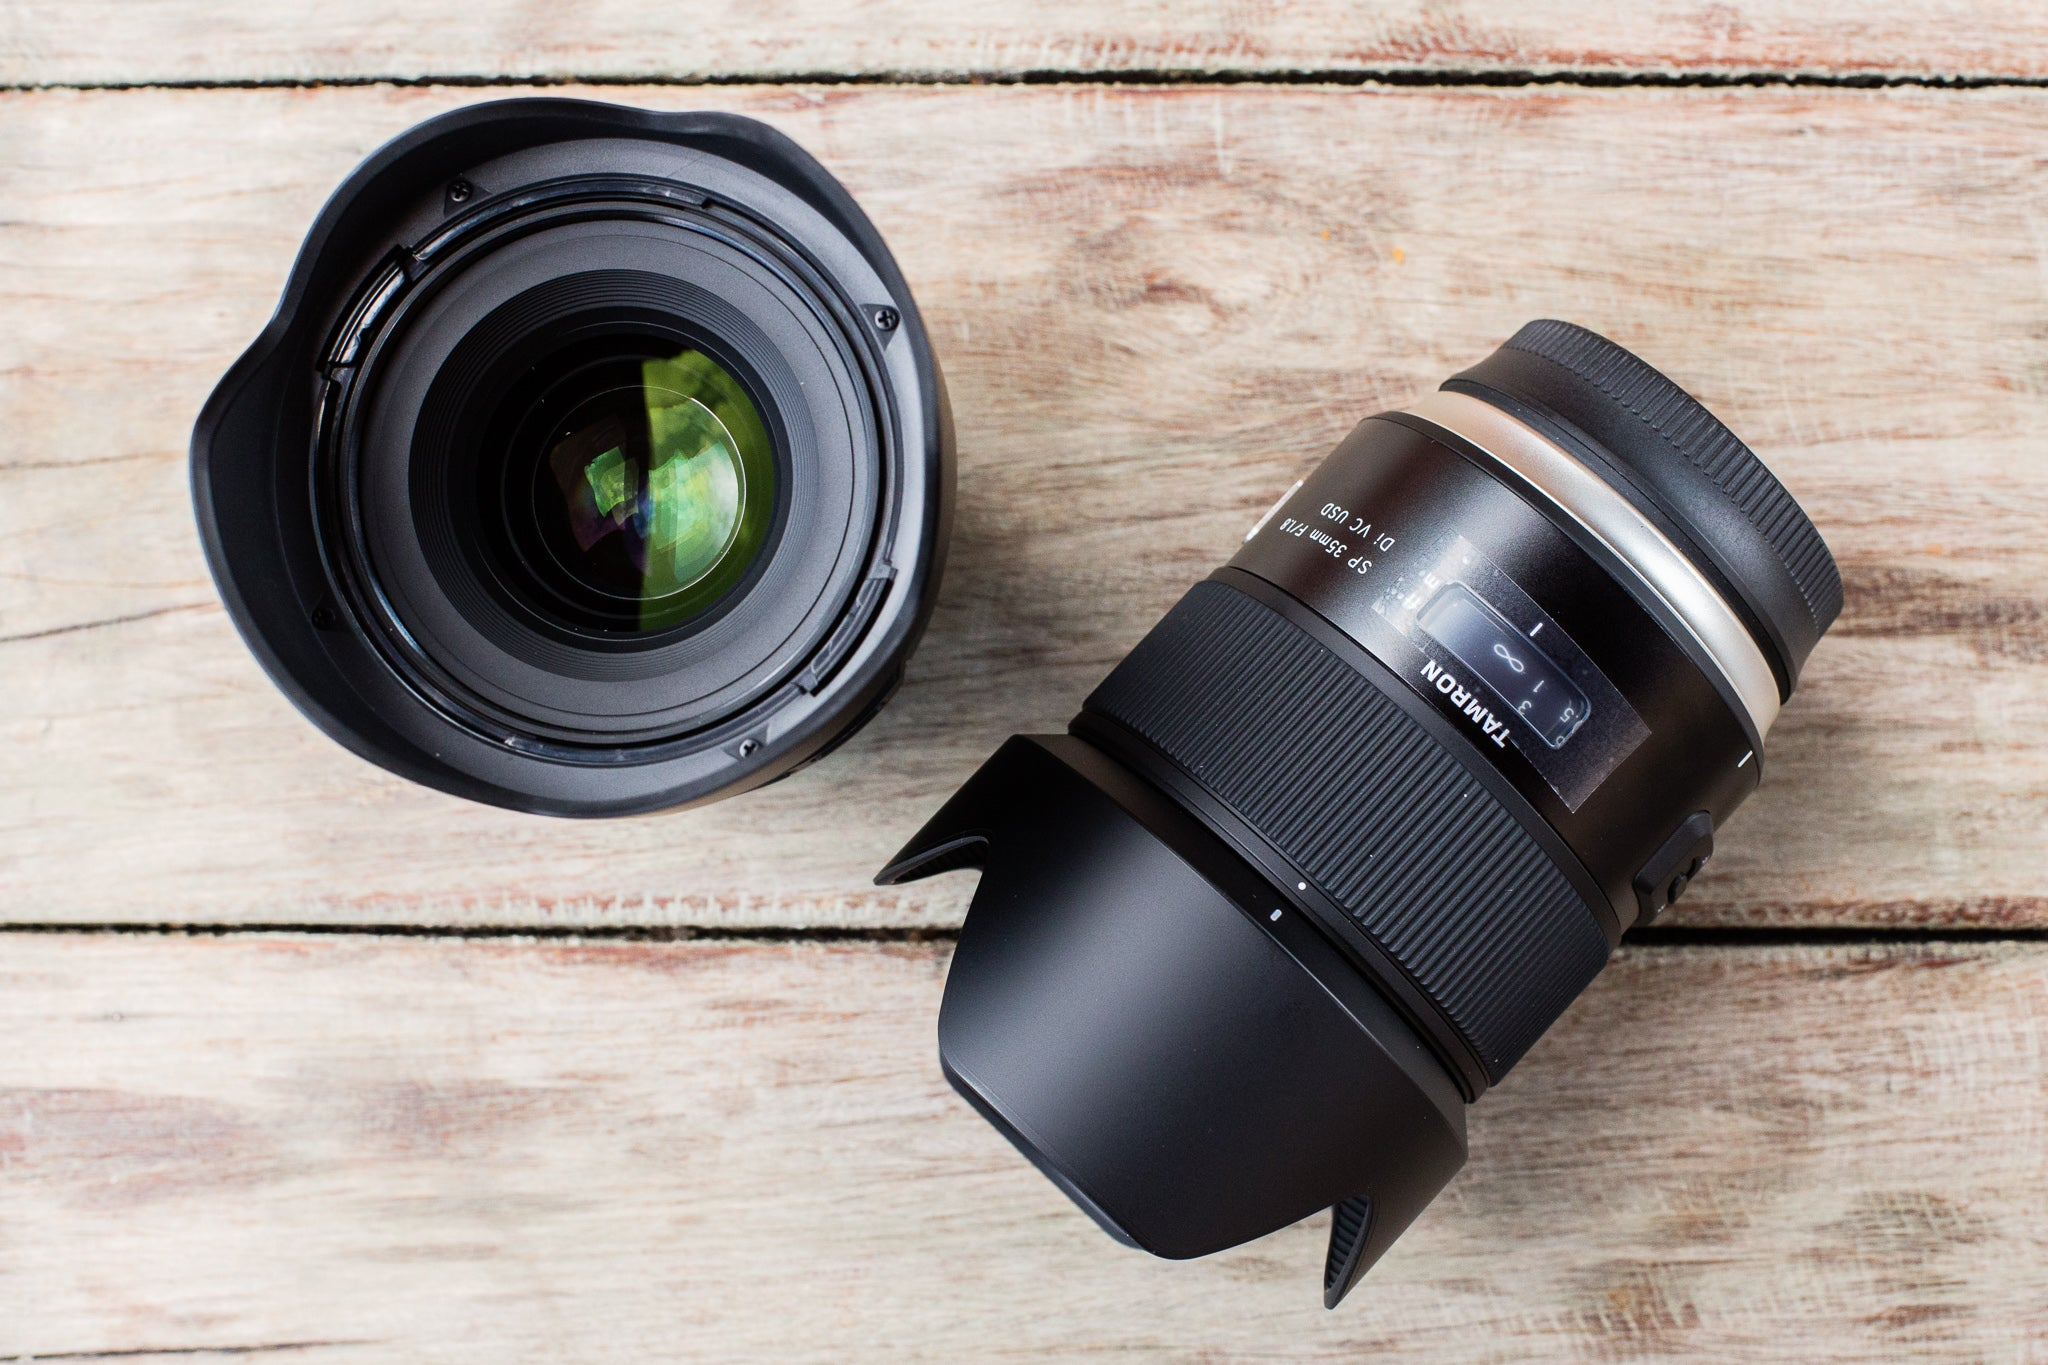 Tamron's SP 35mm f/1.8 and SP 45mm f/1.8 Close-Focusing Lenses Are Its First Fast Primes